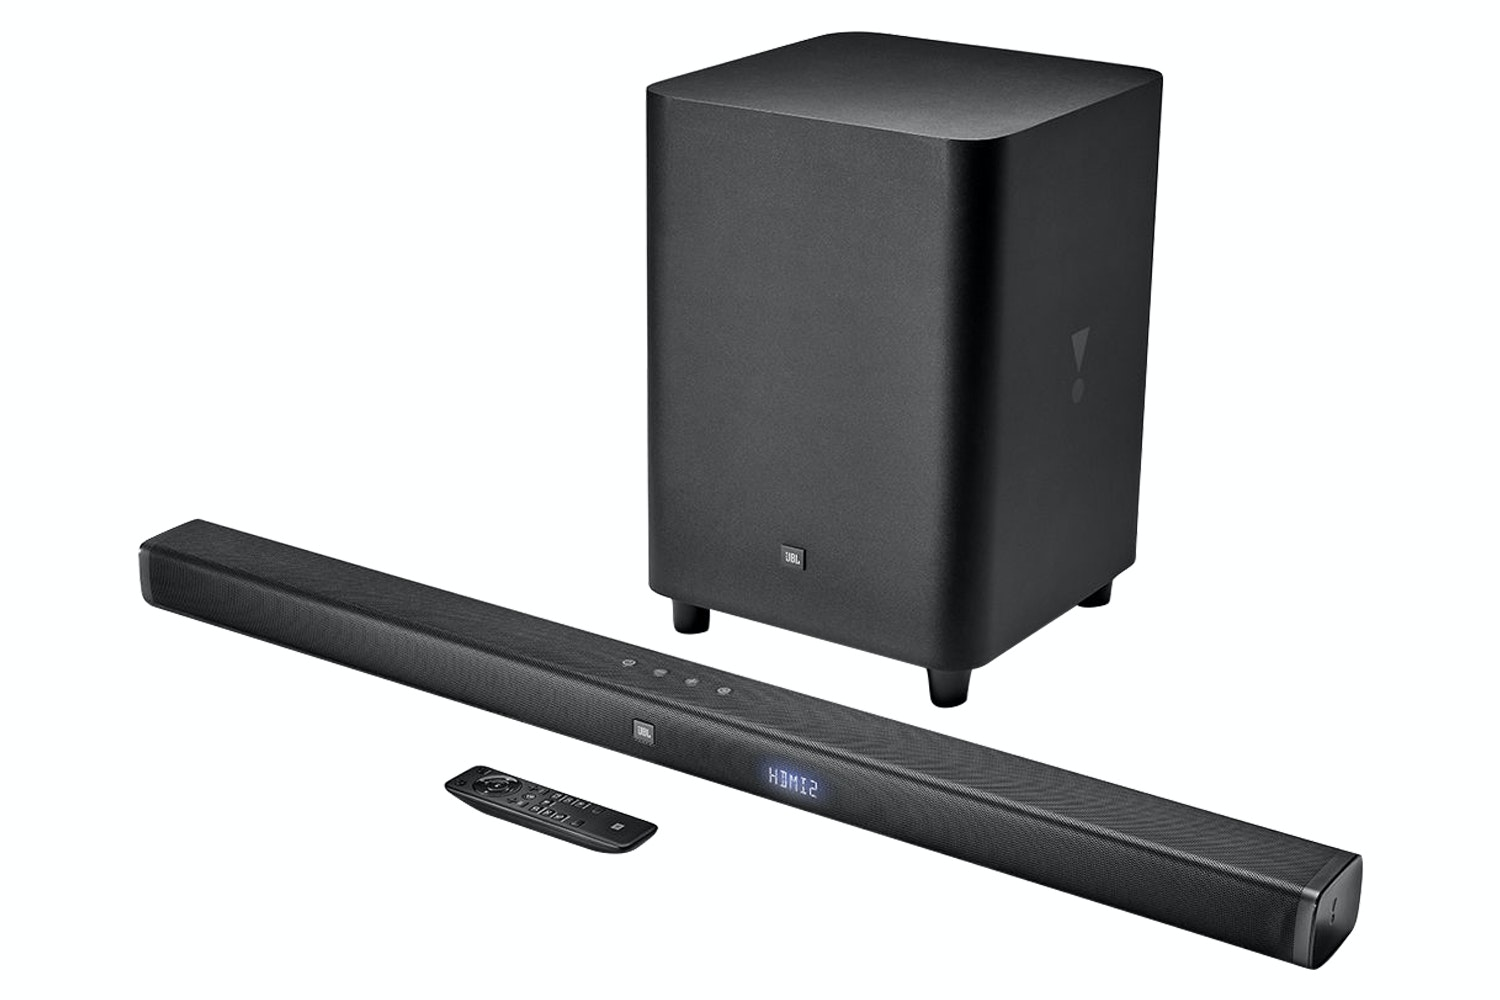 JBL 3.1Ch Soundbar with Wireless Subwoofer